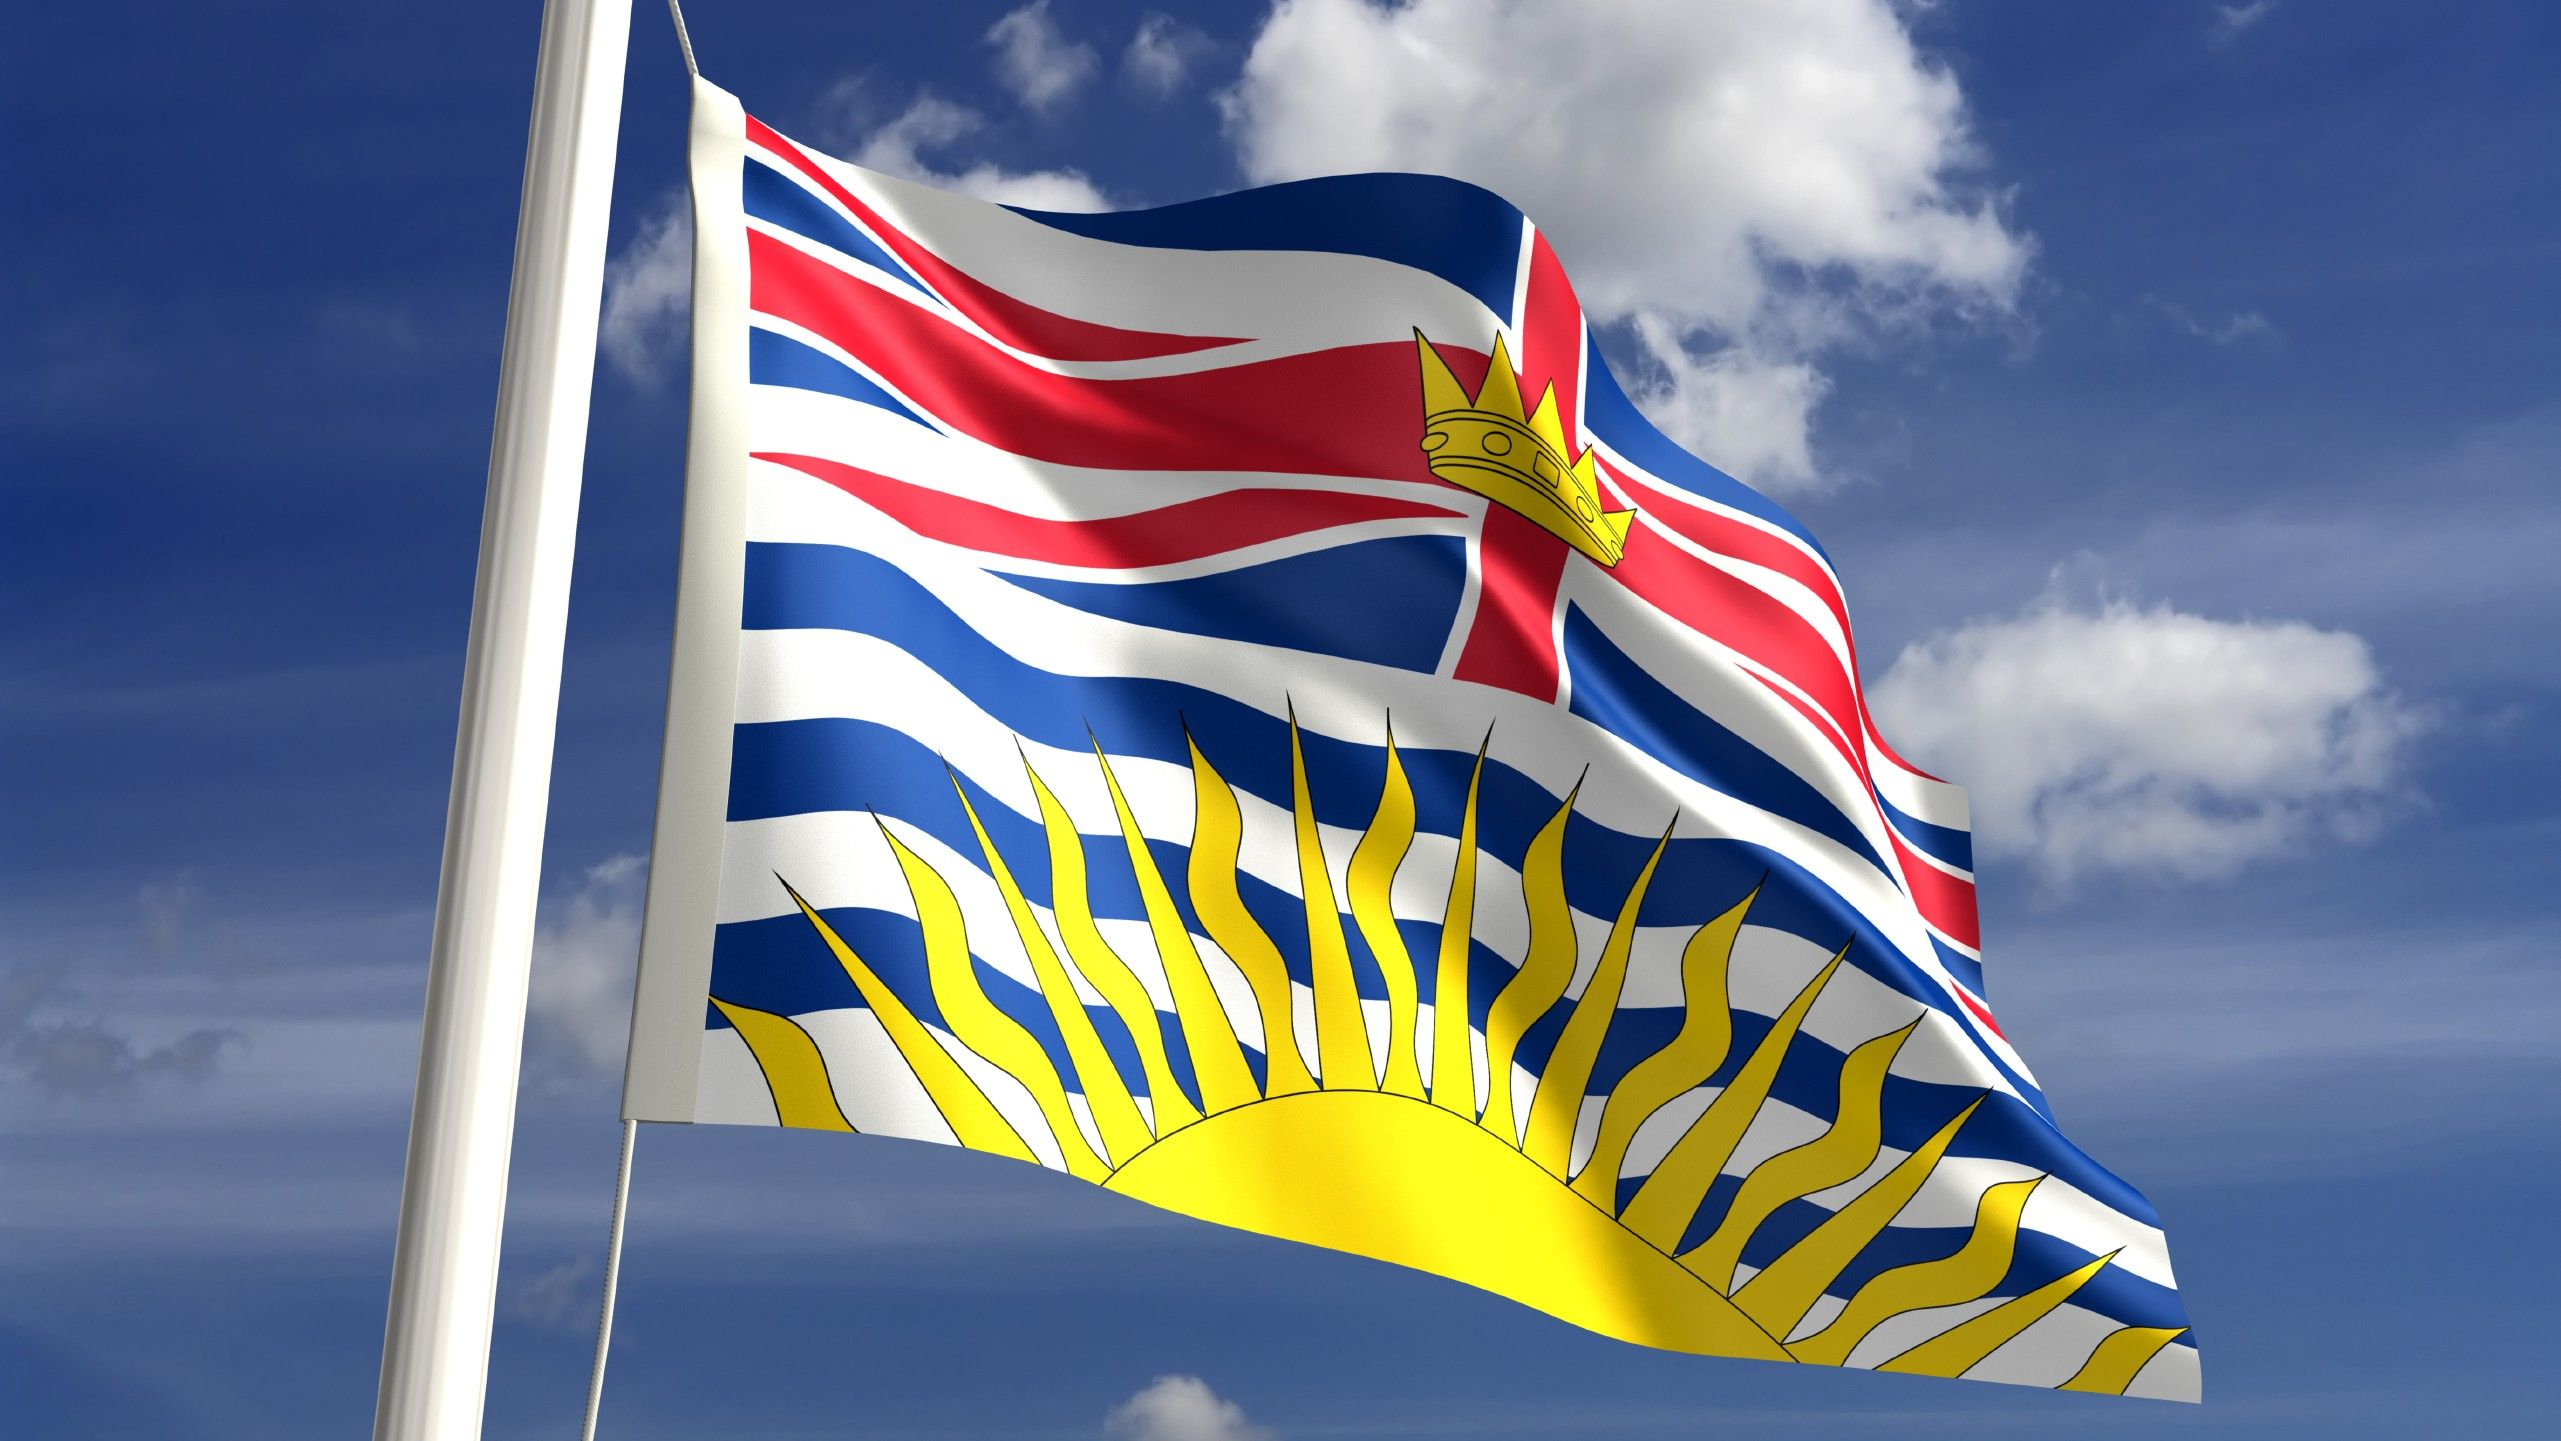 Winners and losers in the BC budget - NEWS 1130